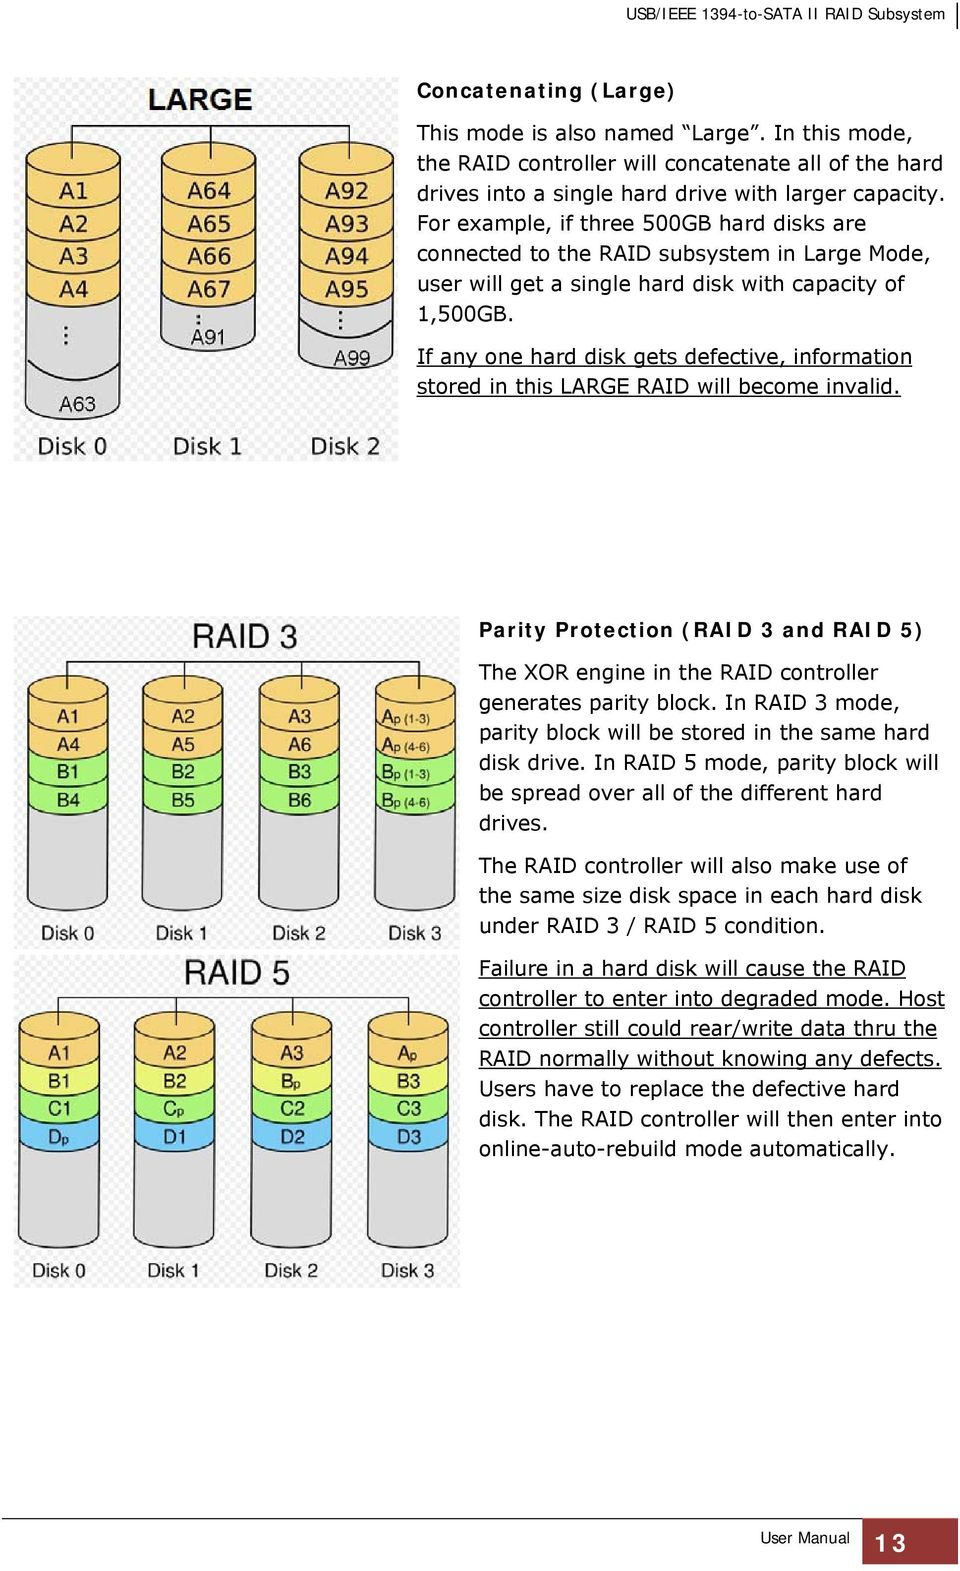 If any one hard disk gets defective, information stored in this LARGE RAID will become invalid. Parity Protection (RAID 3 and RAID 5) The XOR engine in the RAID controller generates parity block.